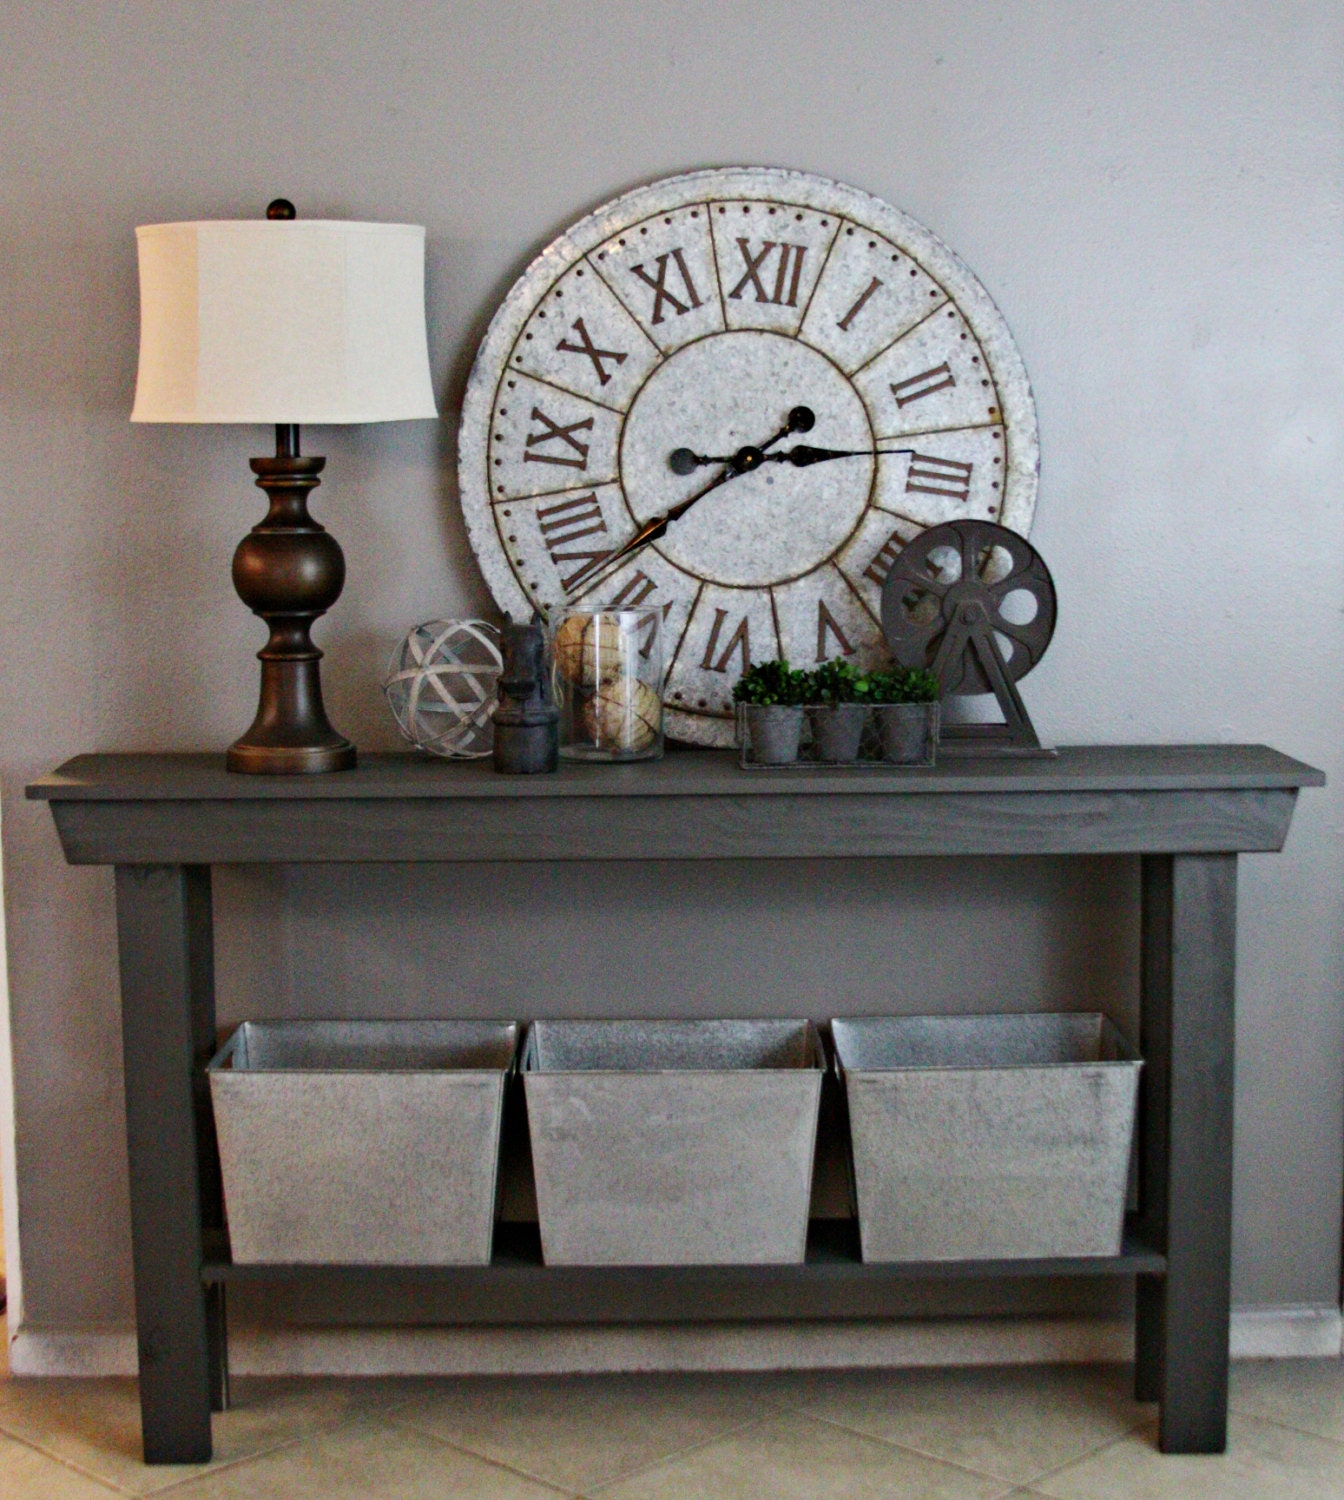 Foyer Table Farmhouse : Entry table farmhouse decor